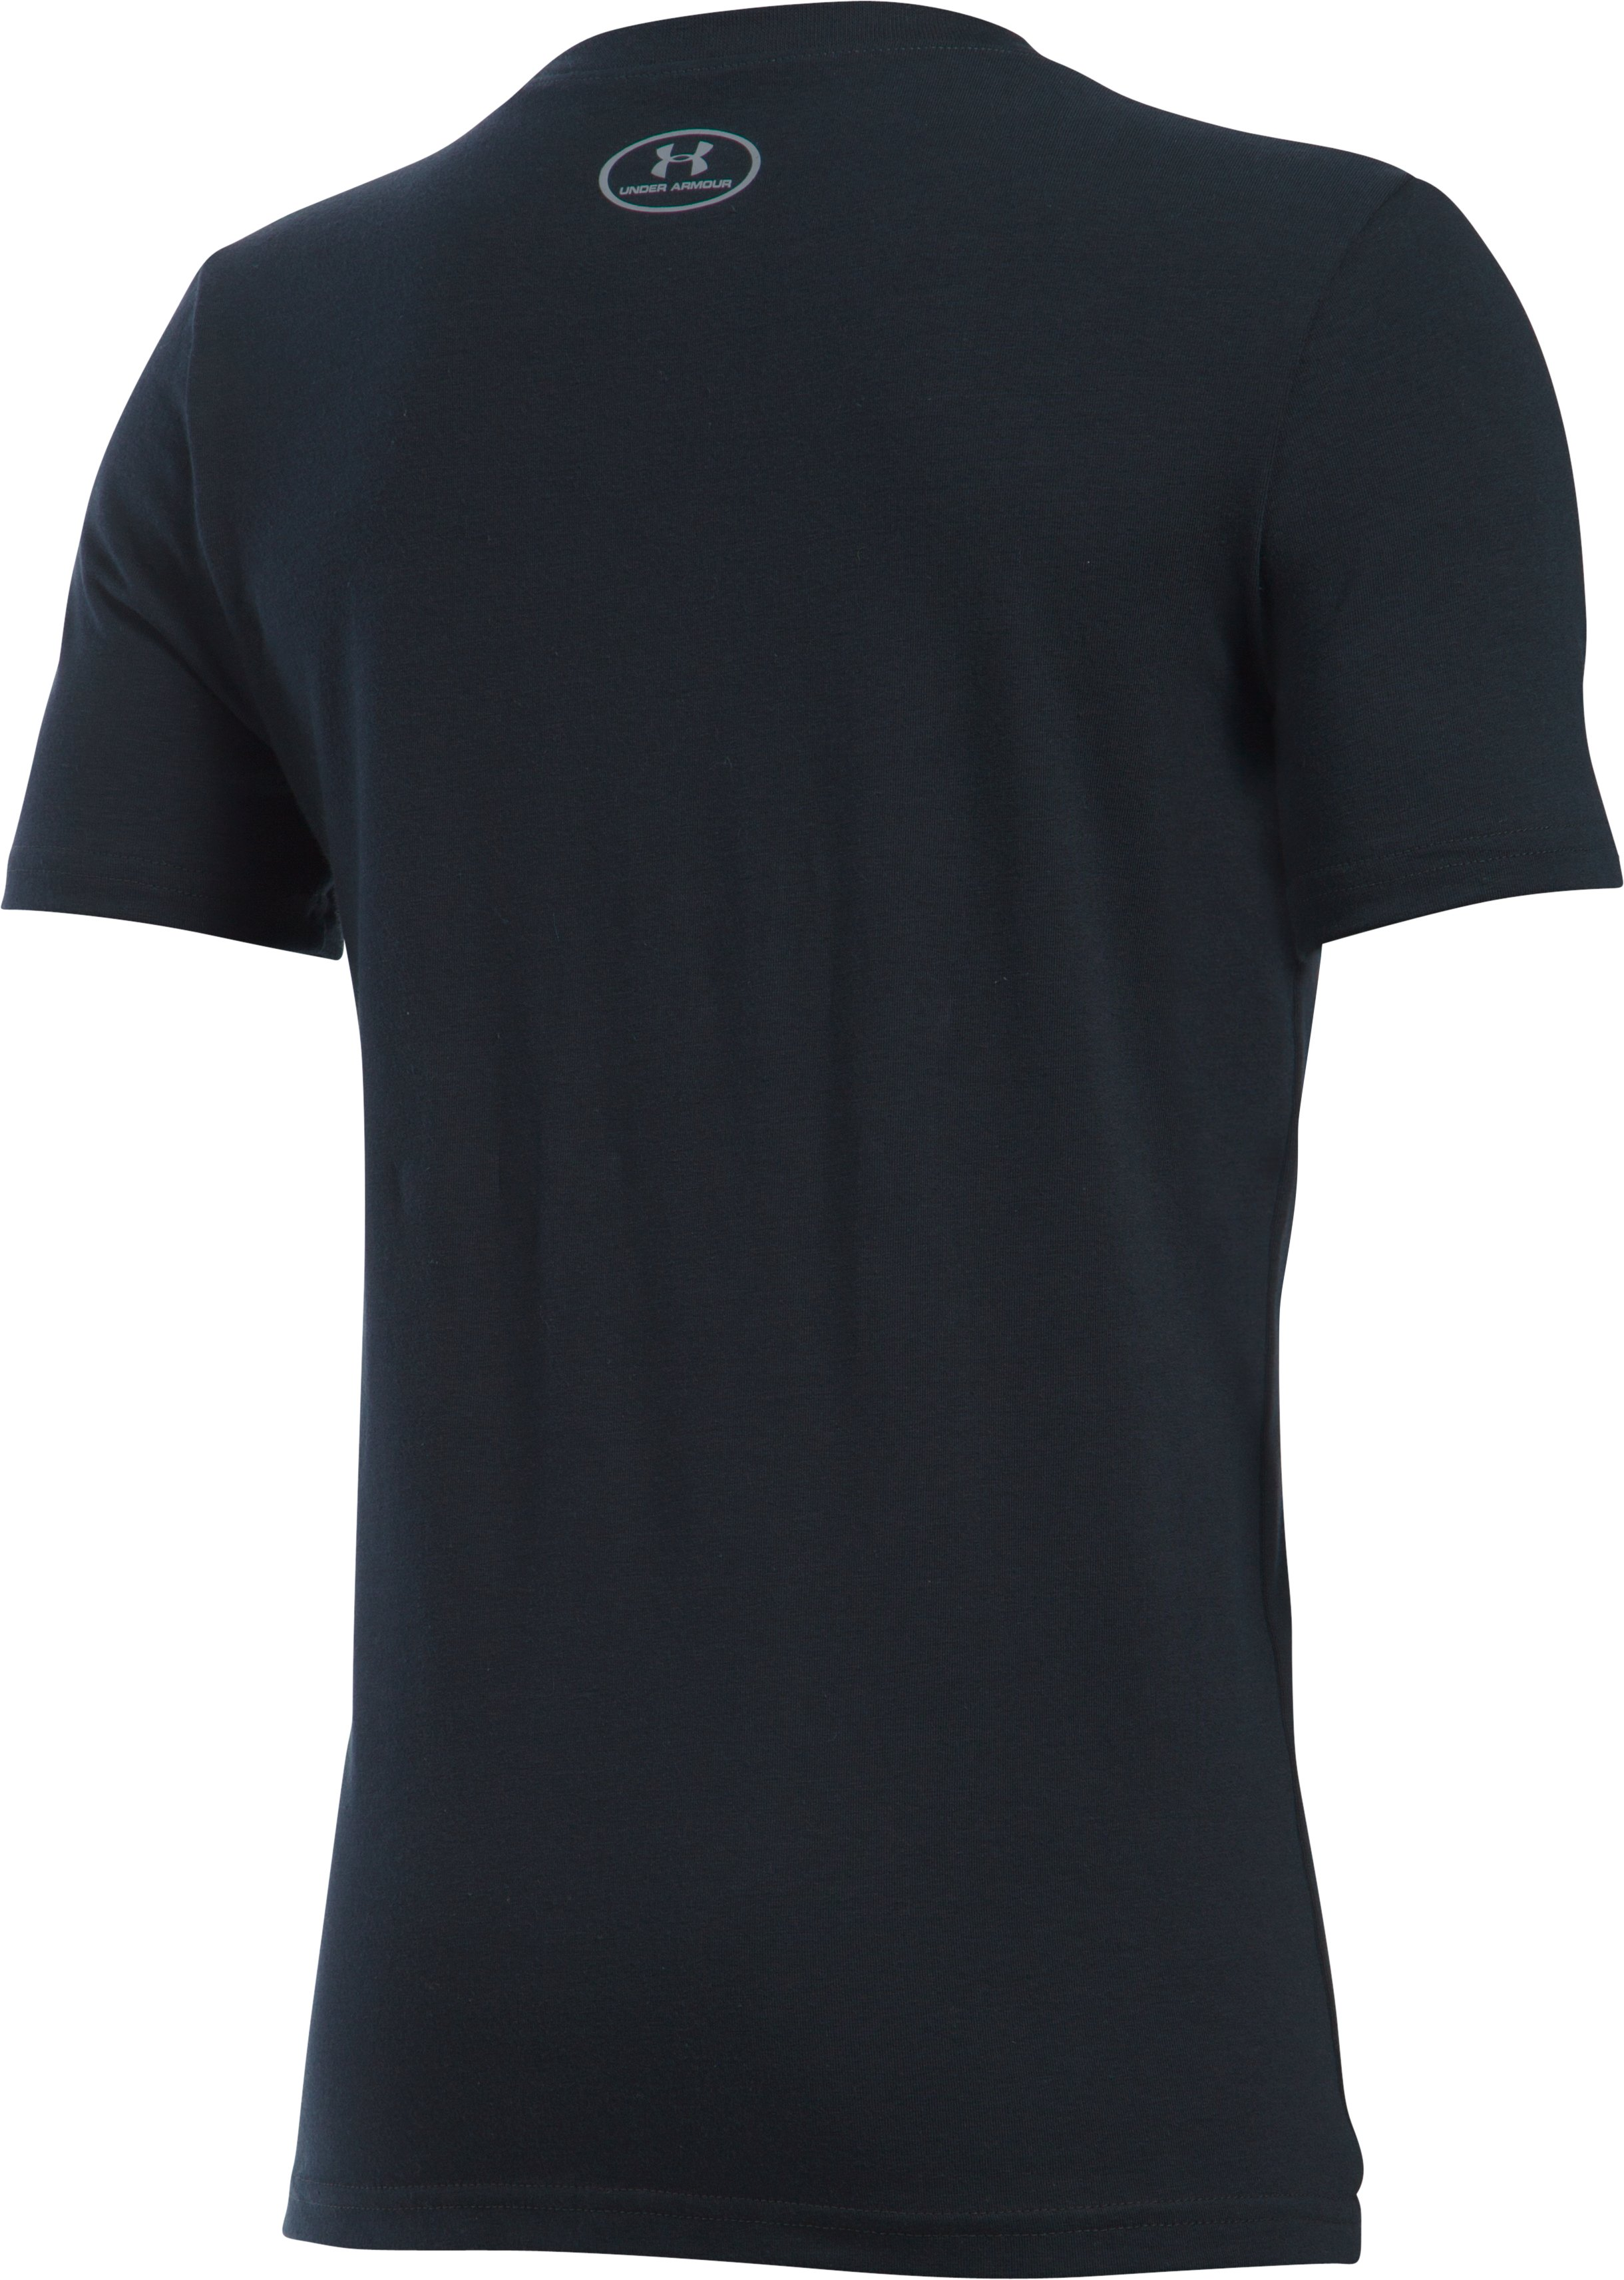 Boys' SC30 Made That Old T-Shirt, Black ,